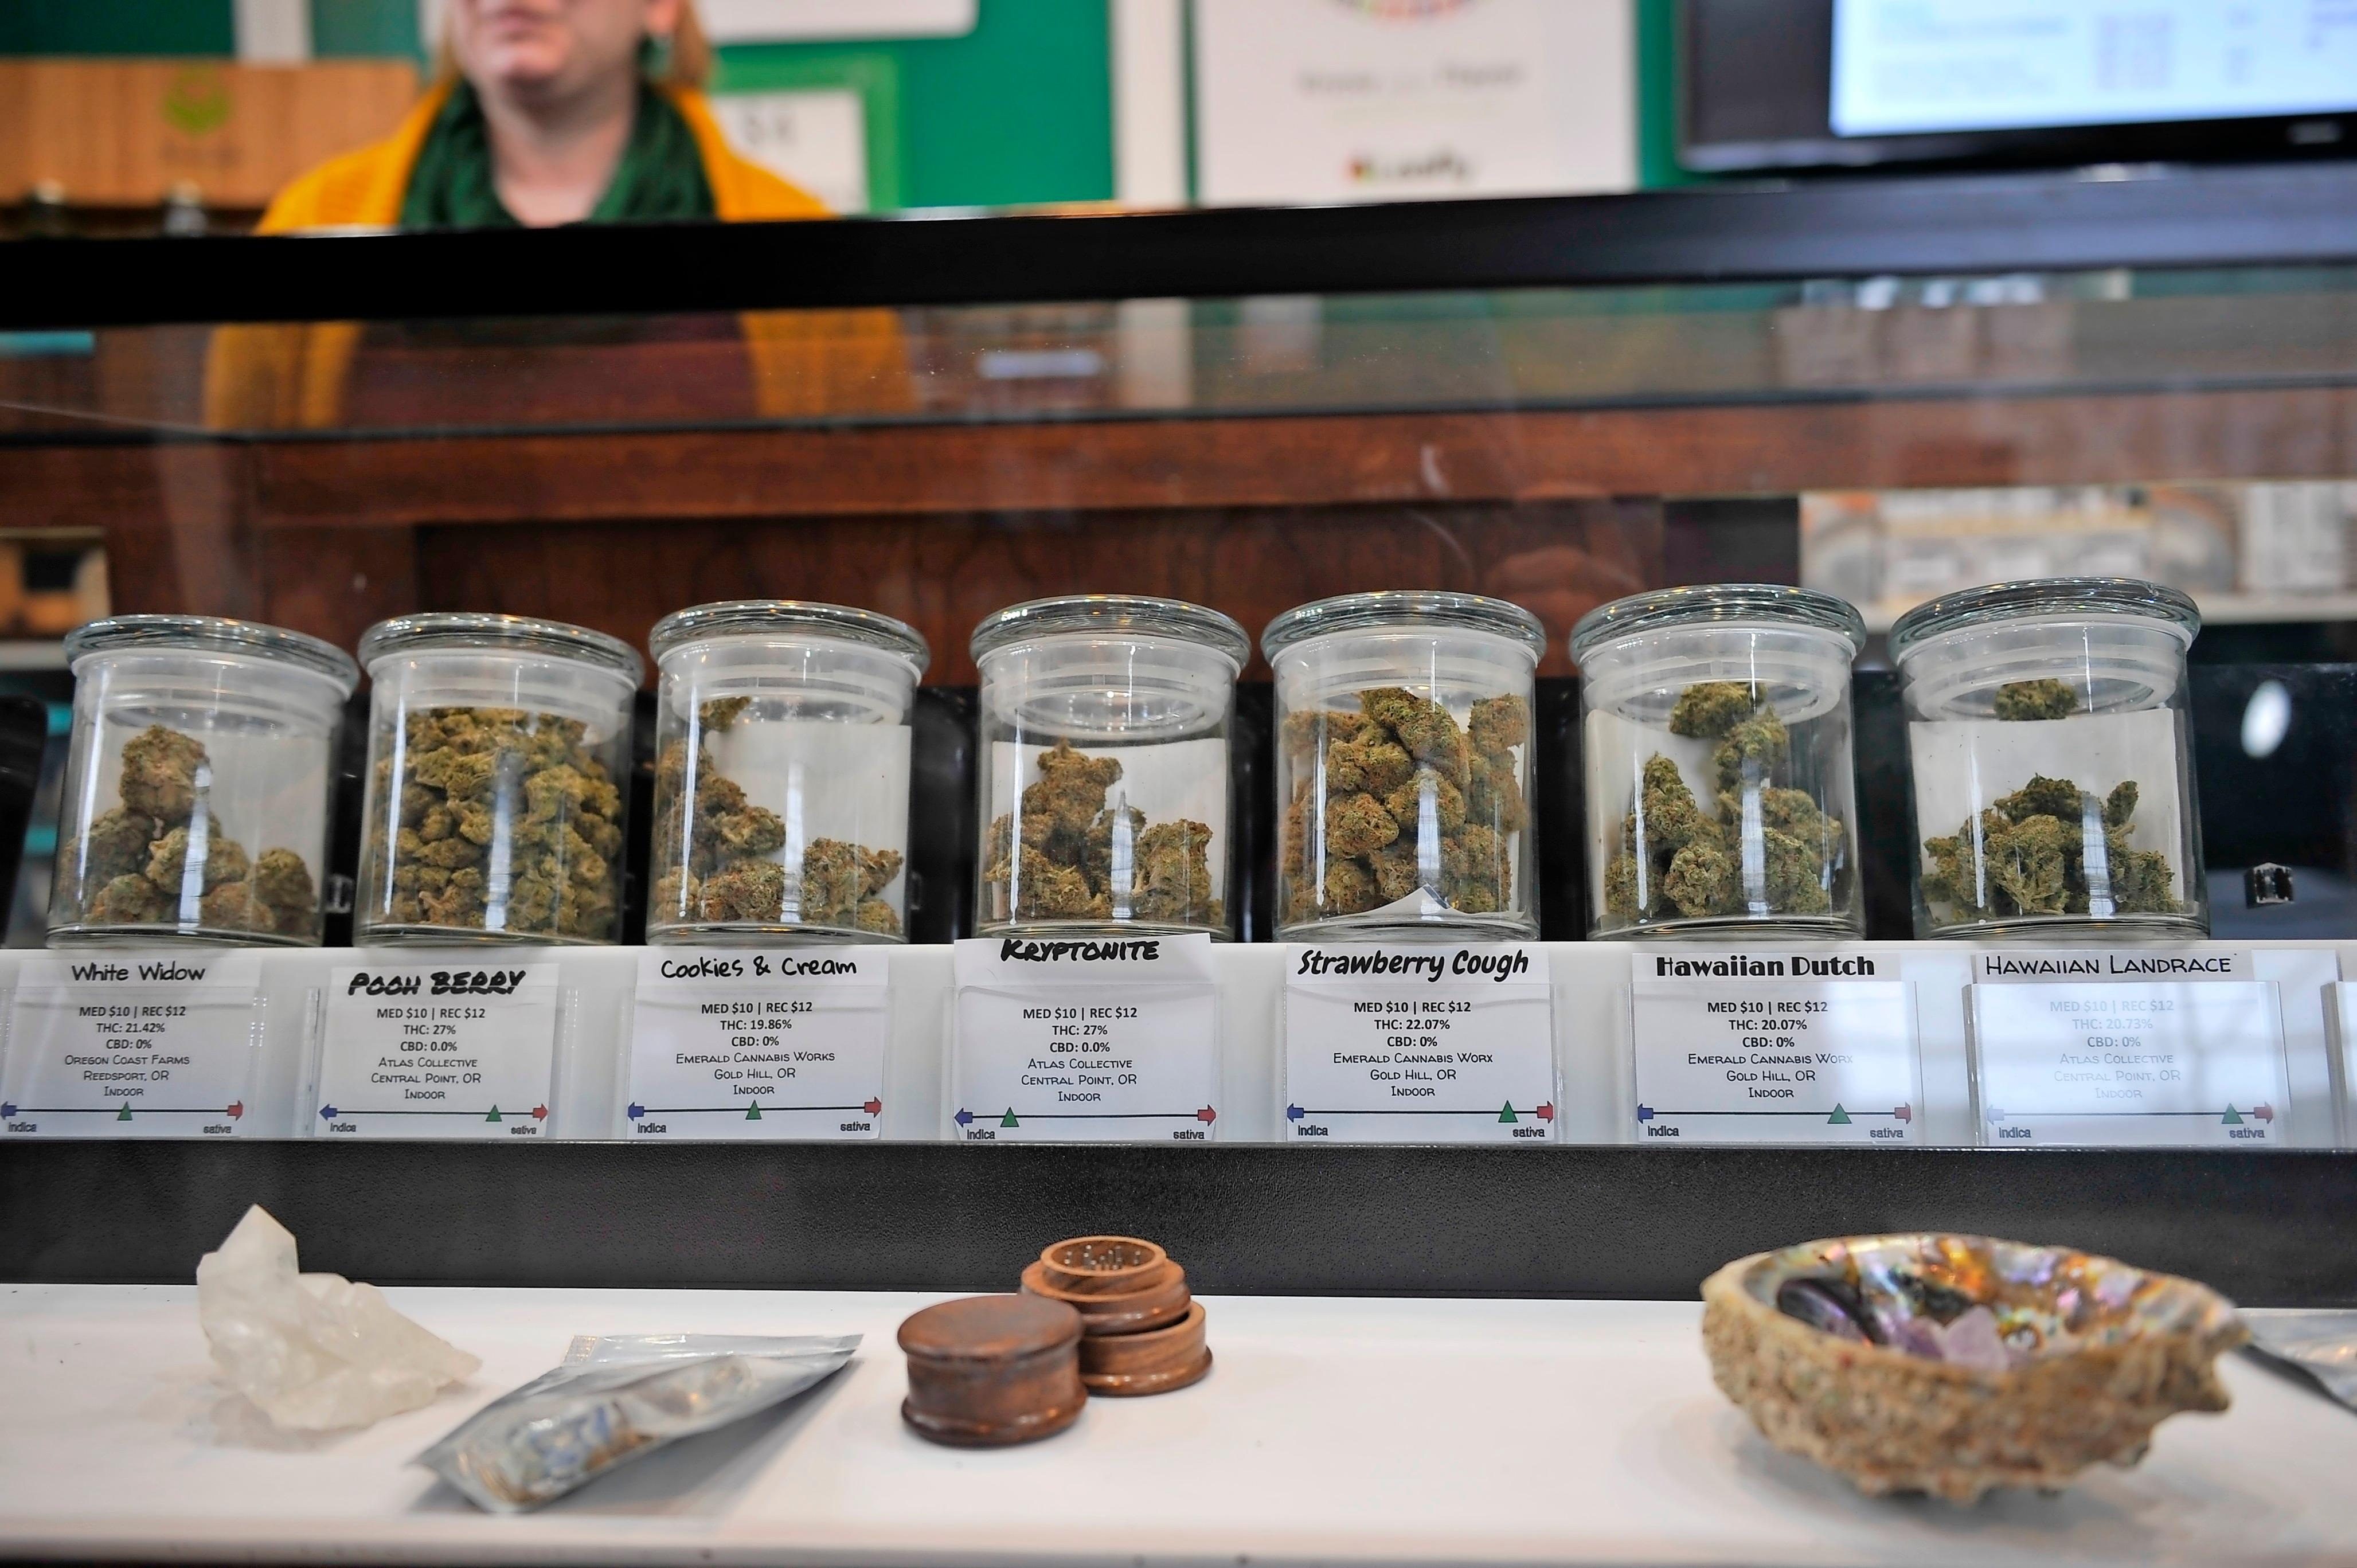 Emerald Triangle offers 385 products in-store or for delivery, from flowers to edibles to concentrates. - JAMIE LUSCH / MAIL TRIBUNE